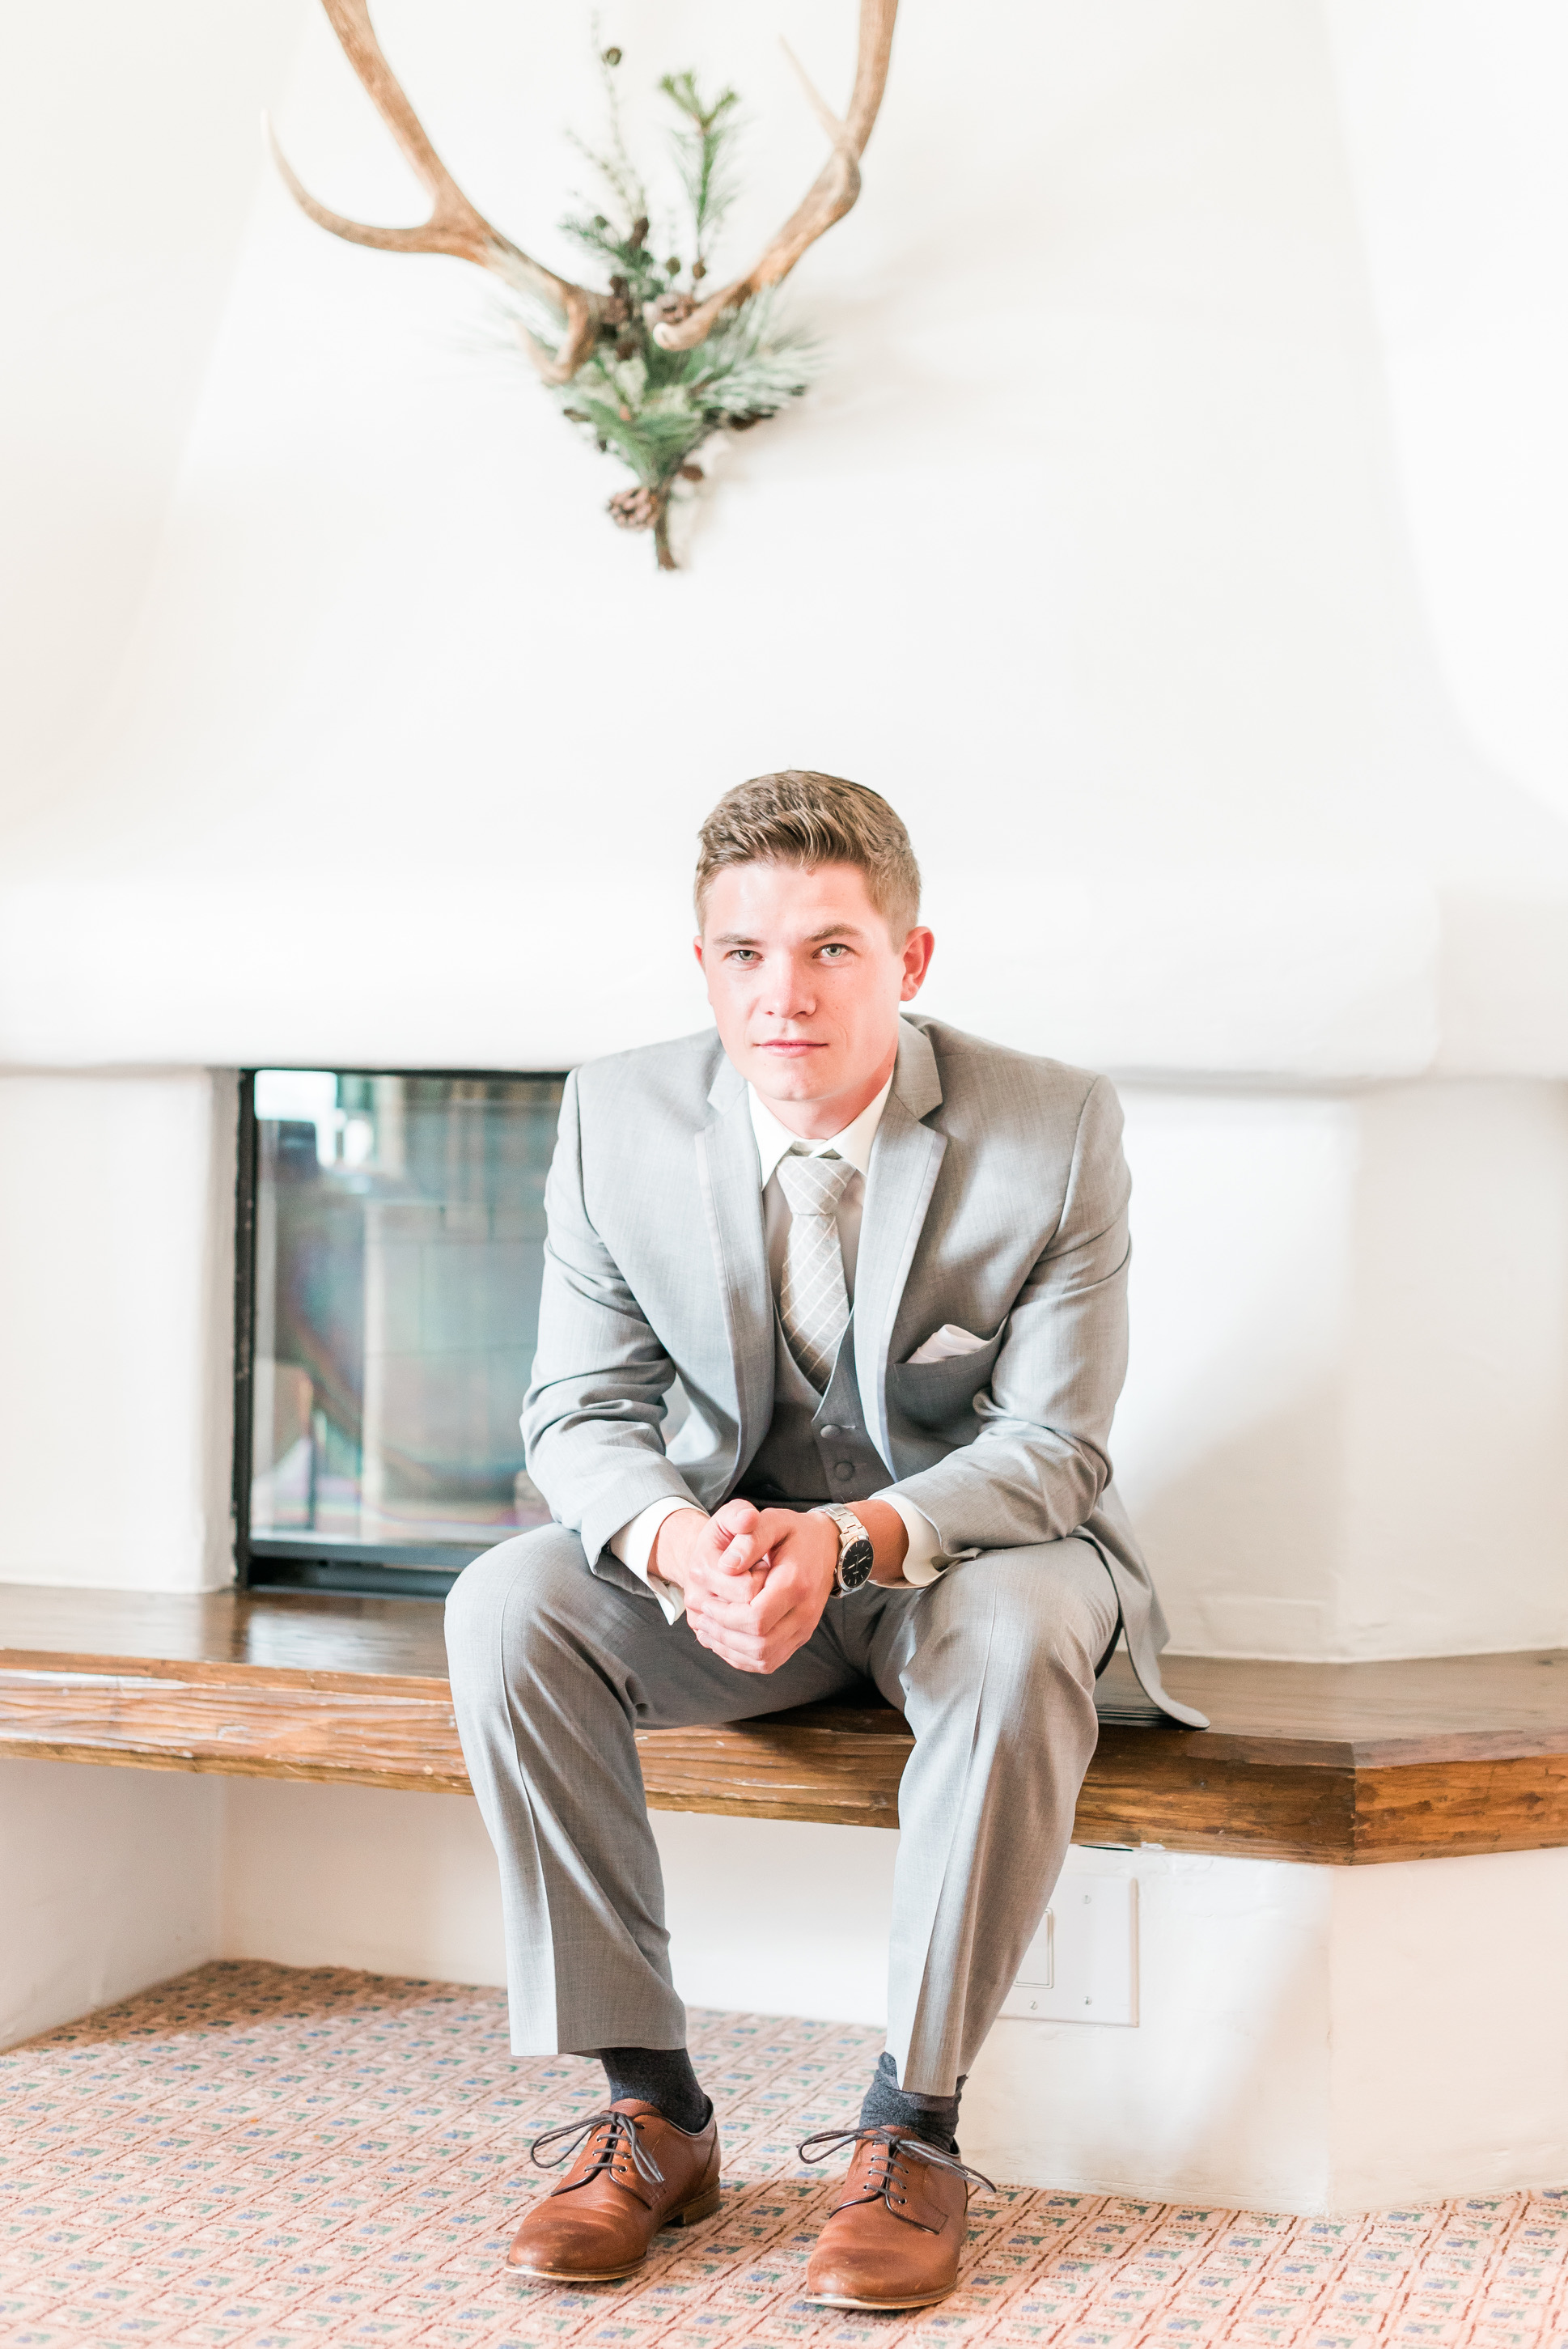 groom getting ready, wedding details, timeless wedding photography, photos to have your wedding photographer take, vail wedding